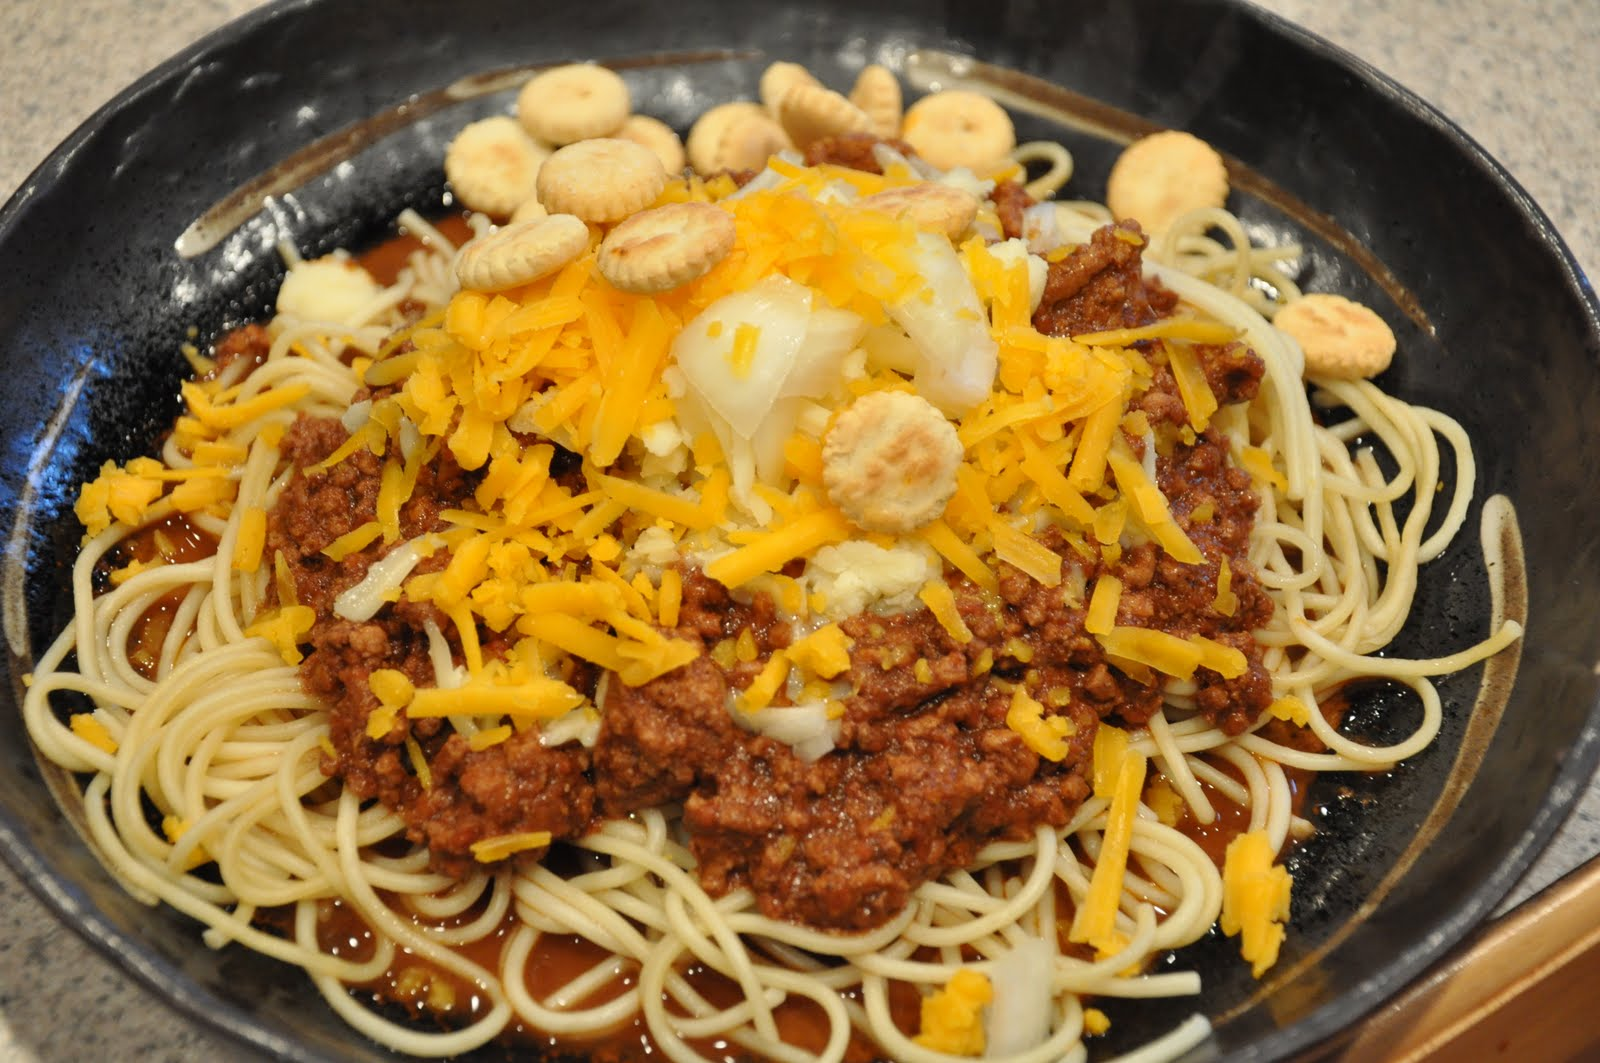 cheese cincinnati chili chili purists have at it from gold star chili ...